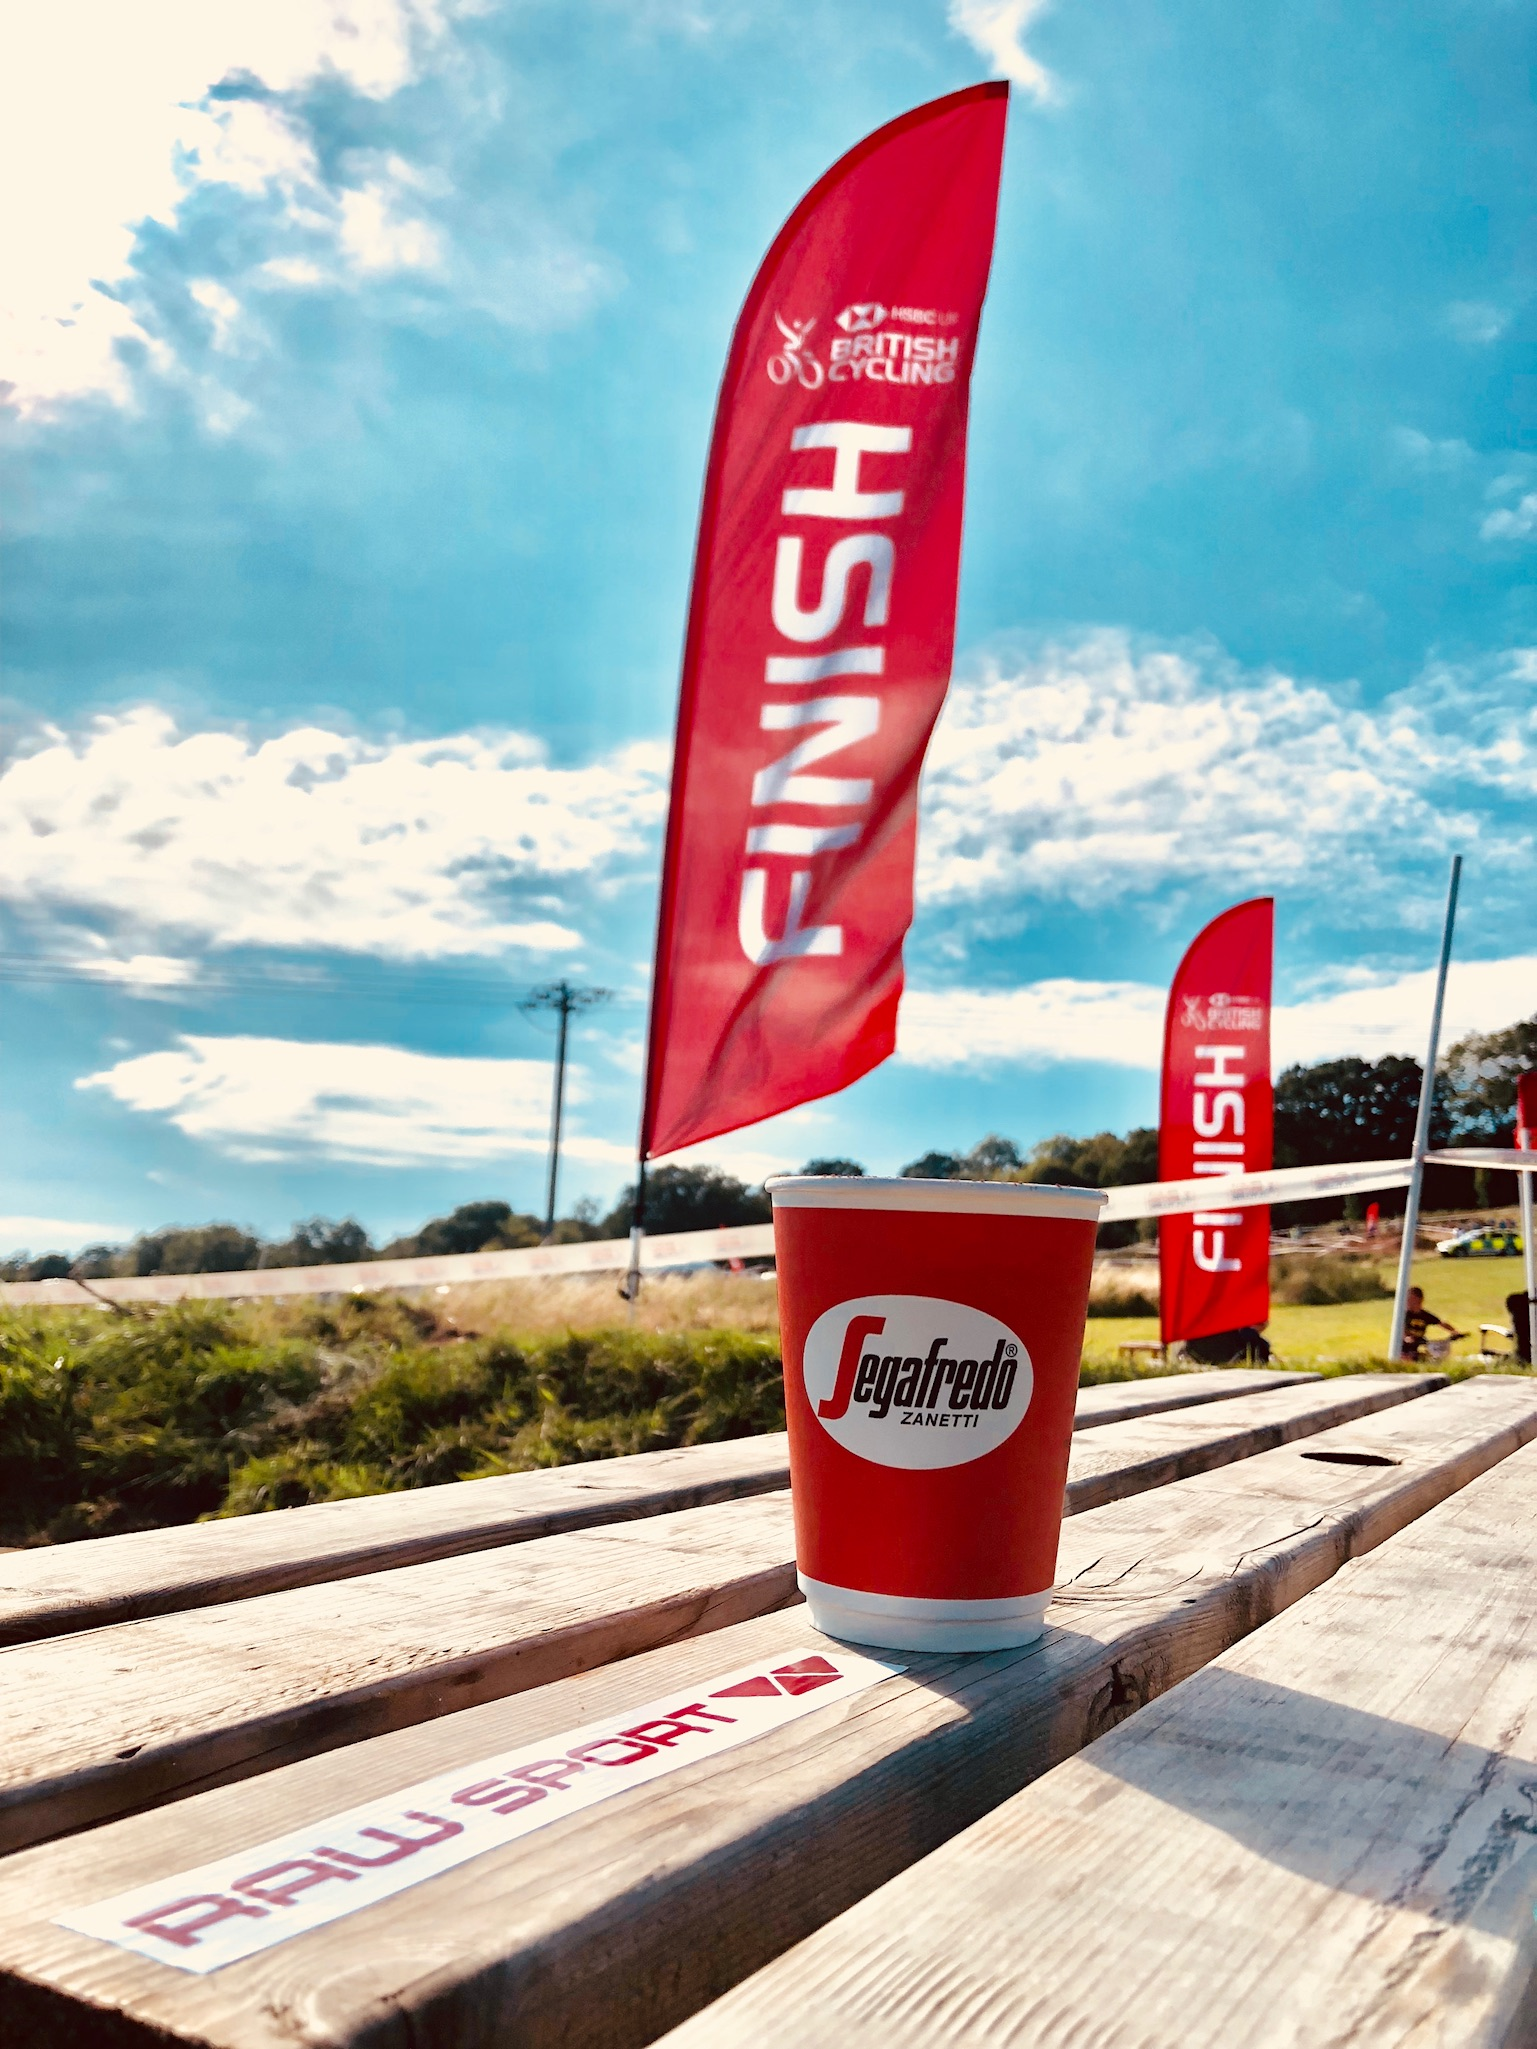 British Cycling Segafredo coffee arty picture